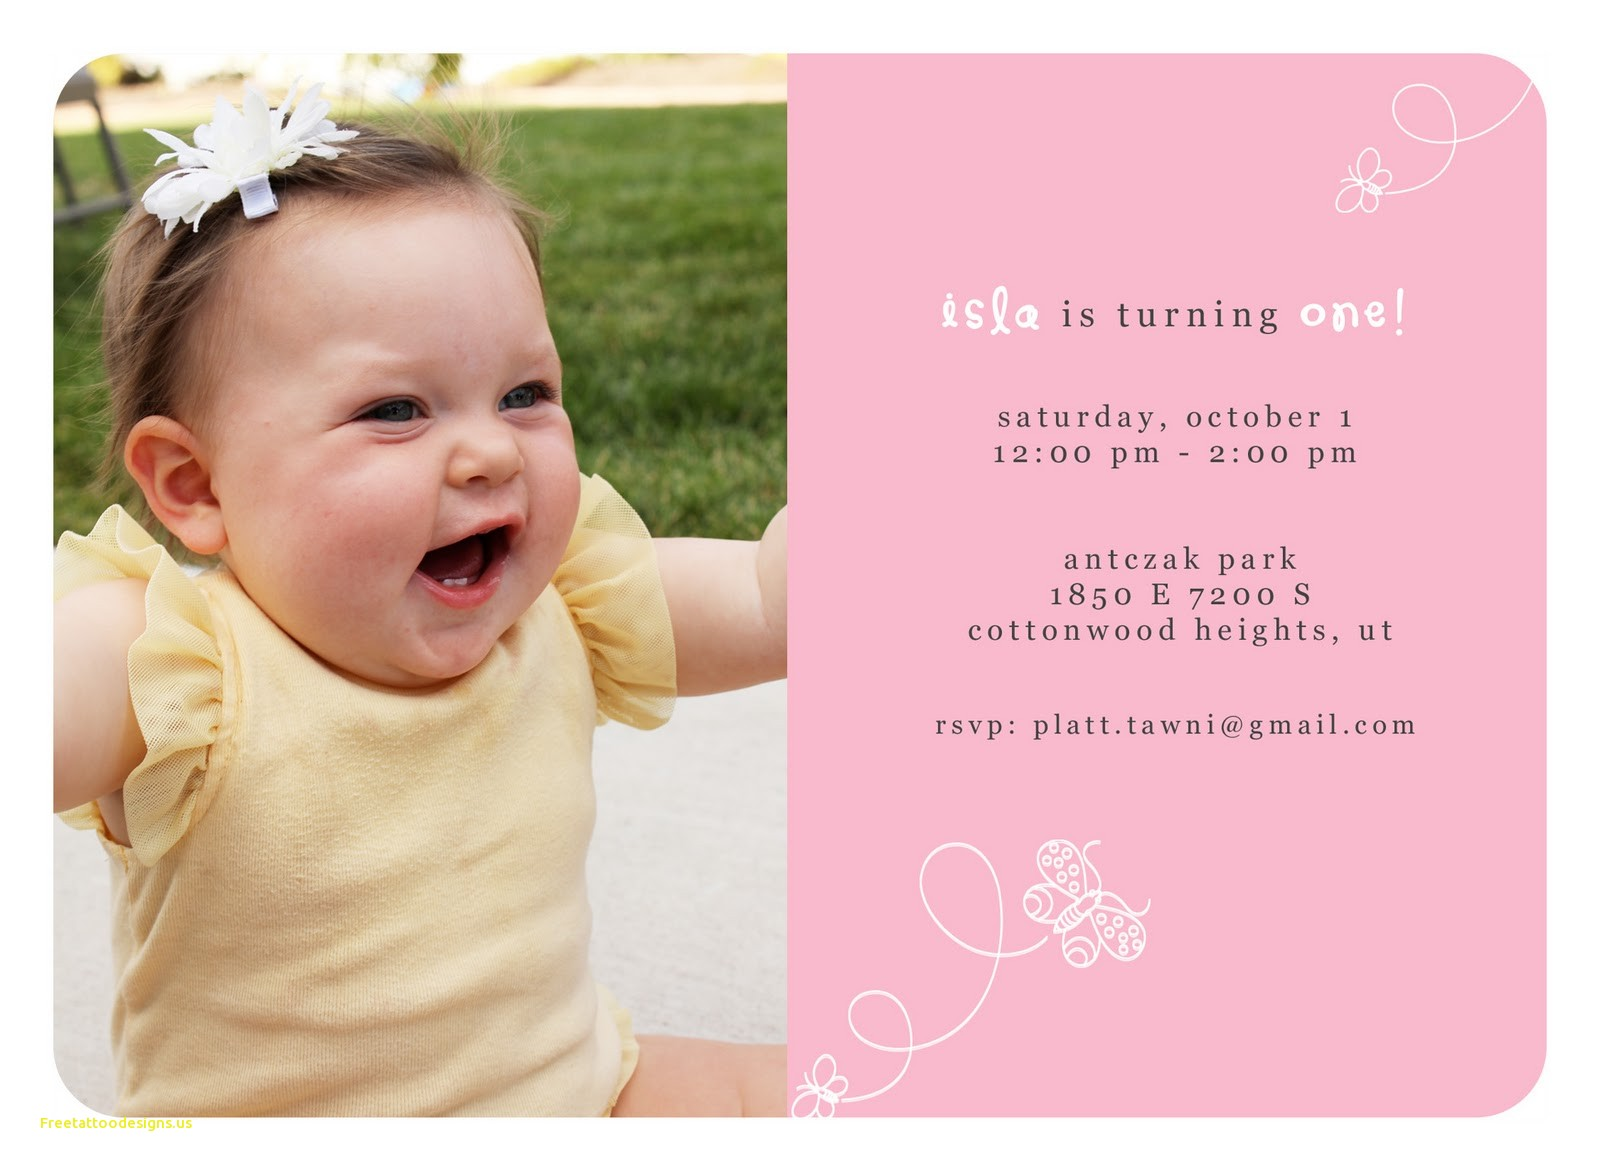 baby 1st birthday invitation wording ; invitation-wording-for-first-birthday-elegant-baby-boy-first-birthday-invitation-quotes-beautiful-quotes-about-of-invitation-wording-for-first-birthday